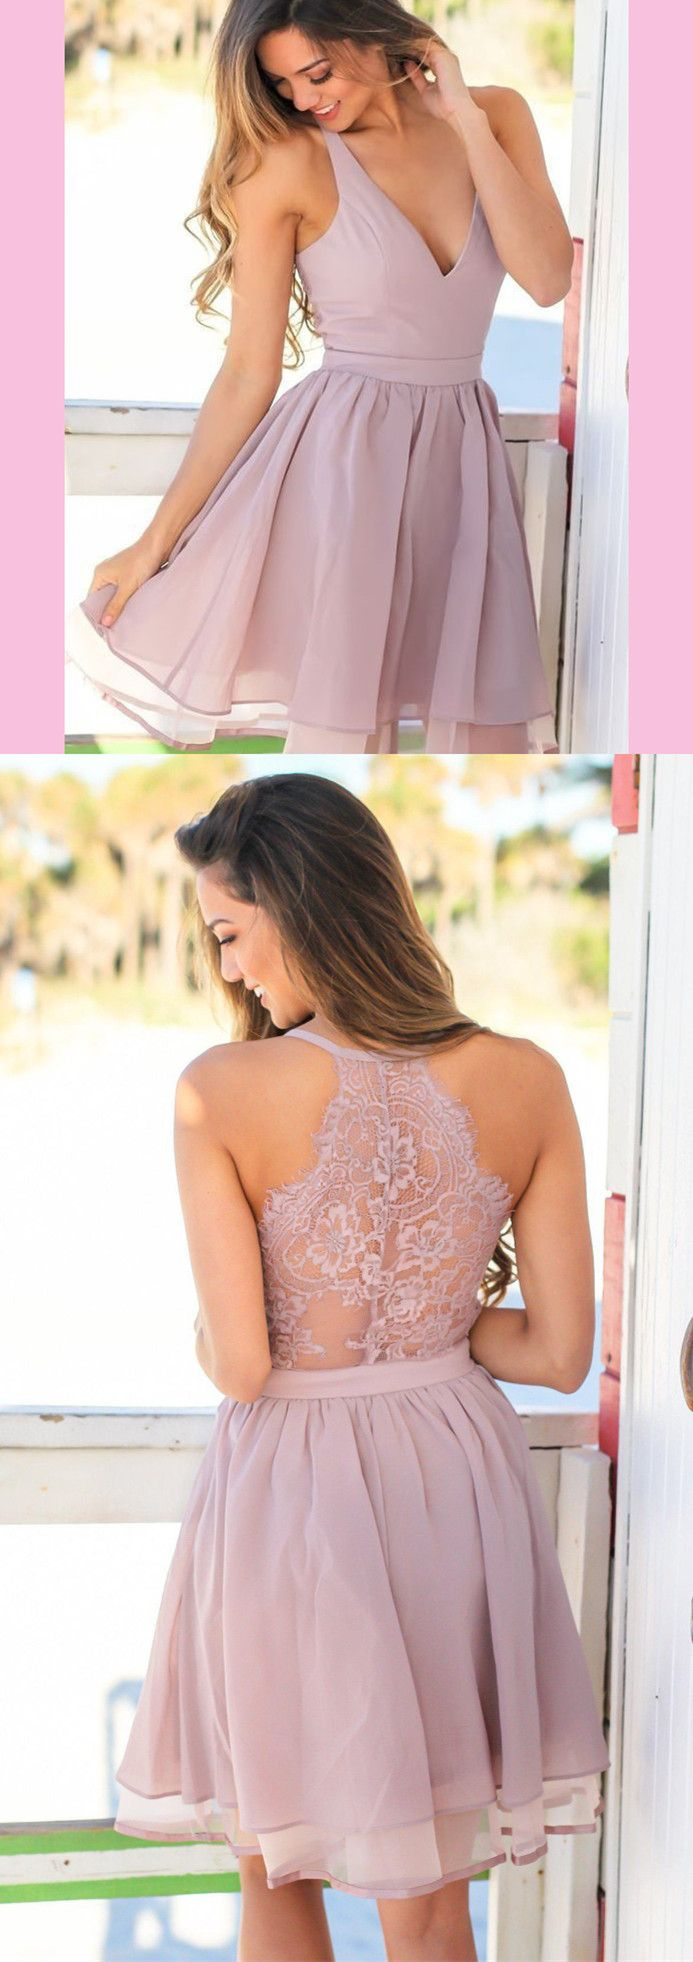 Classic aline pink short homecoming dress with pockets ball gown